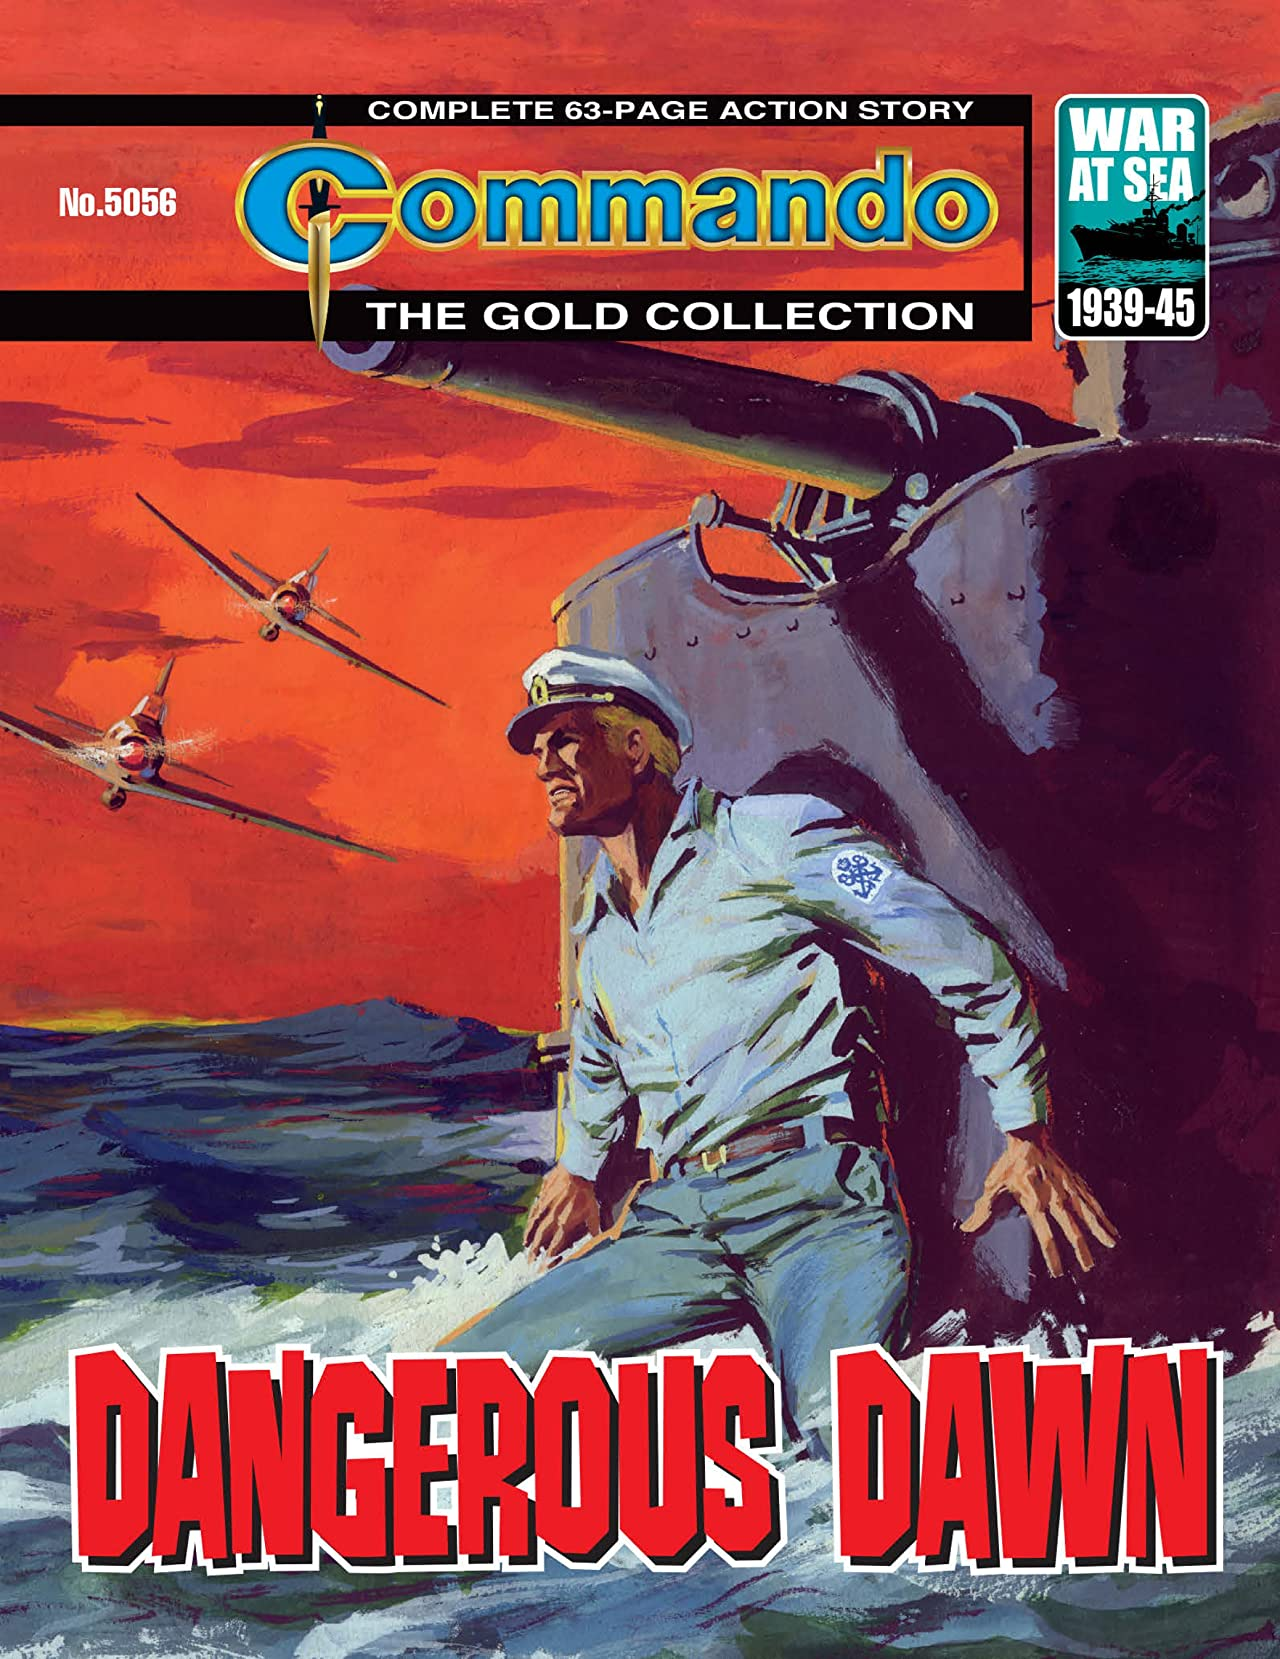 Commando #5056: Dangerous Dawn